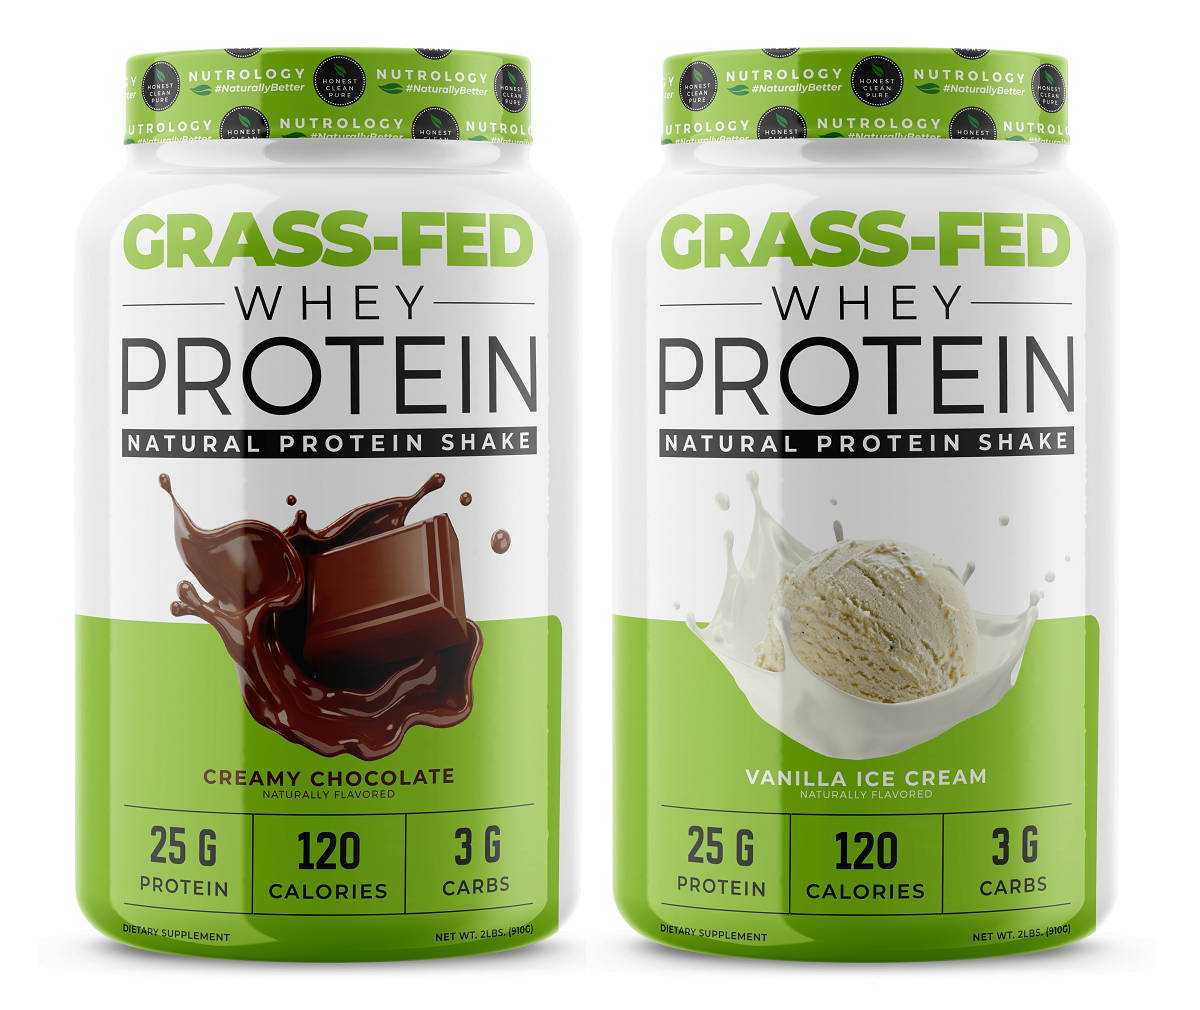 Nutrology Gras Fed Whey Protein Chocolate and Vanilla